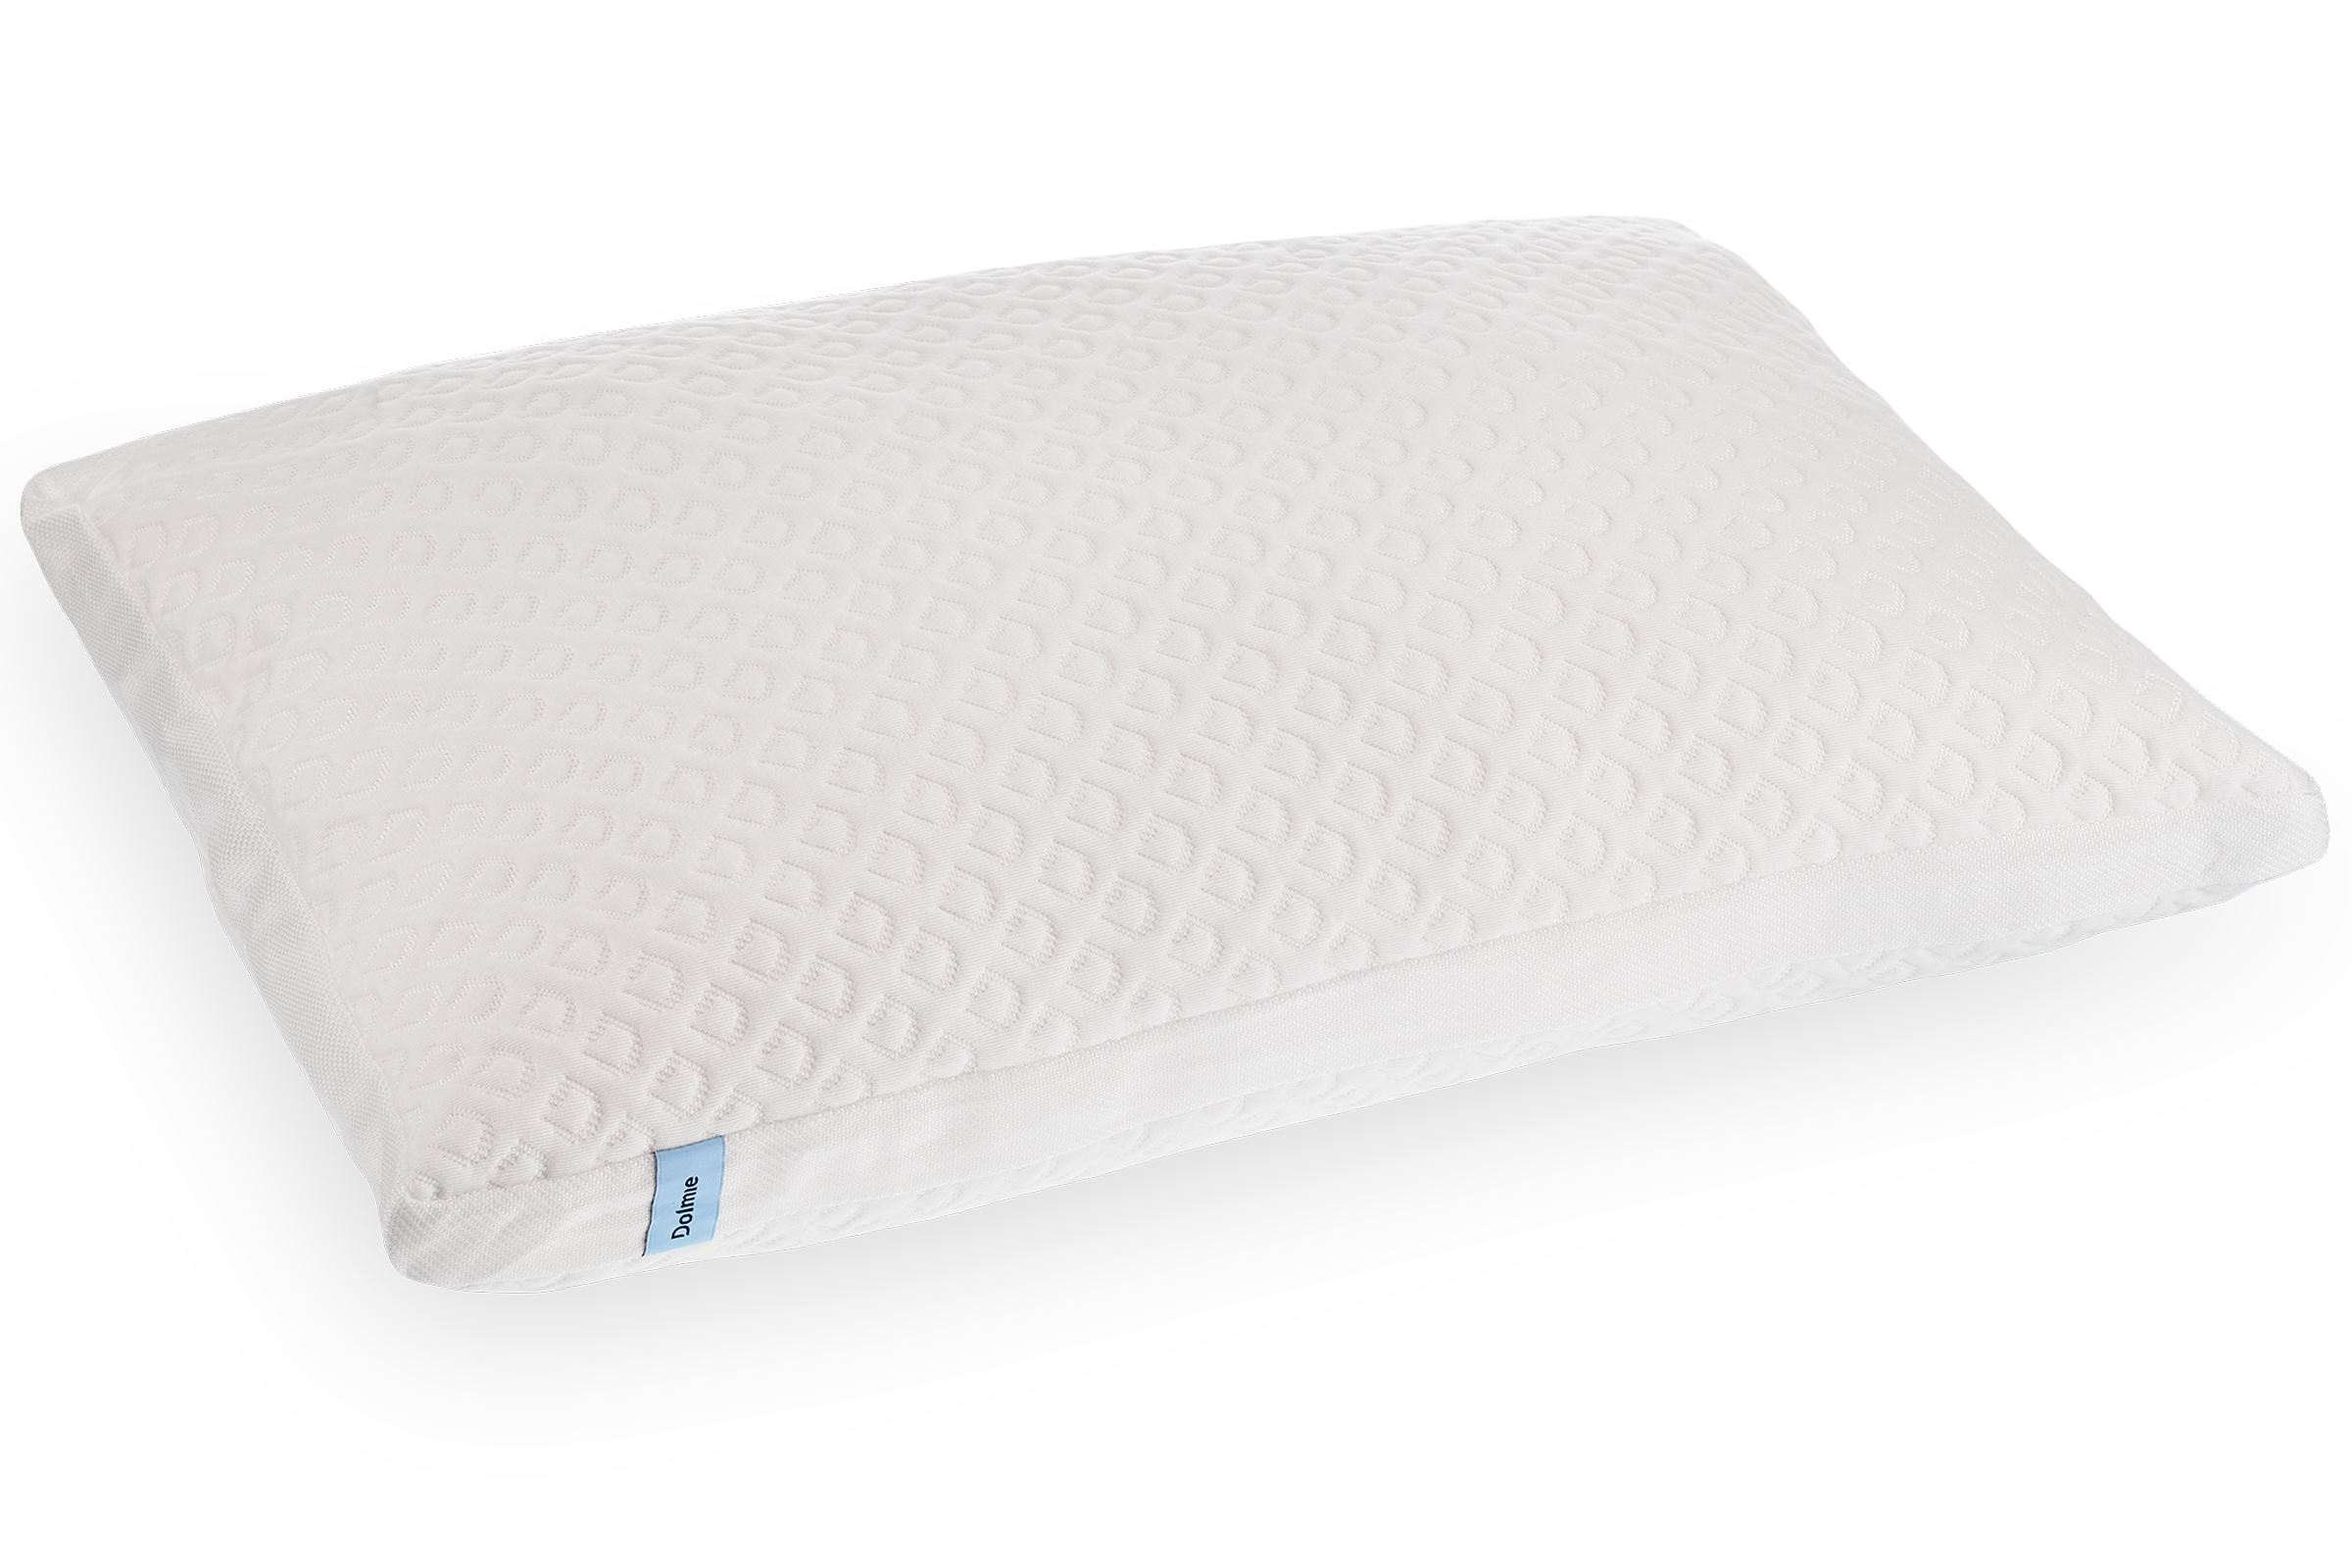 Comfort and cleanliness: the washable and modular pillow with an ergonomic design